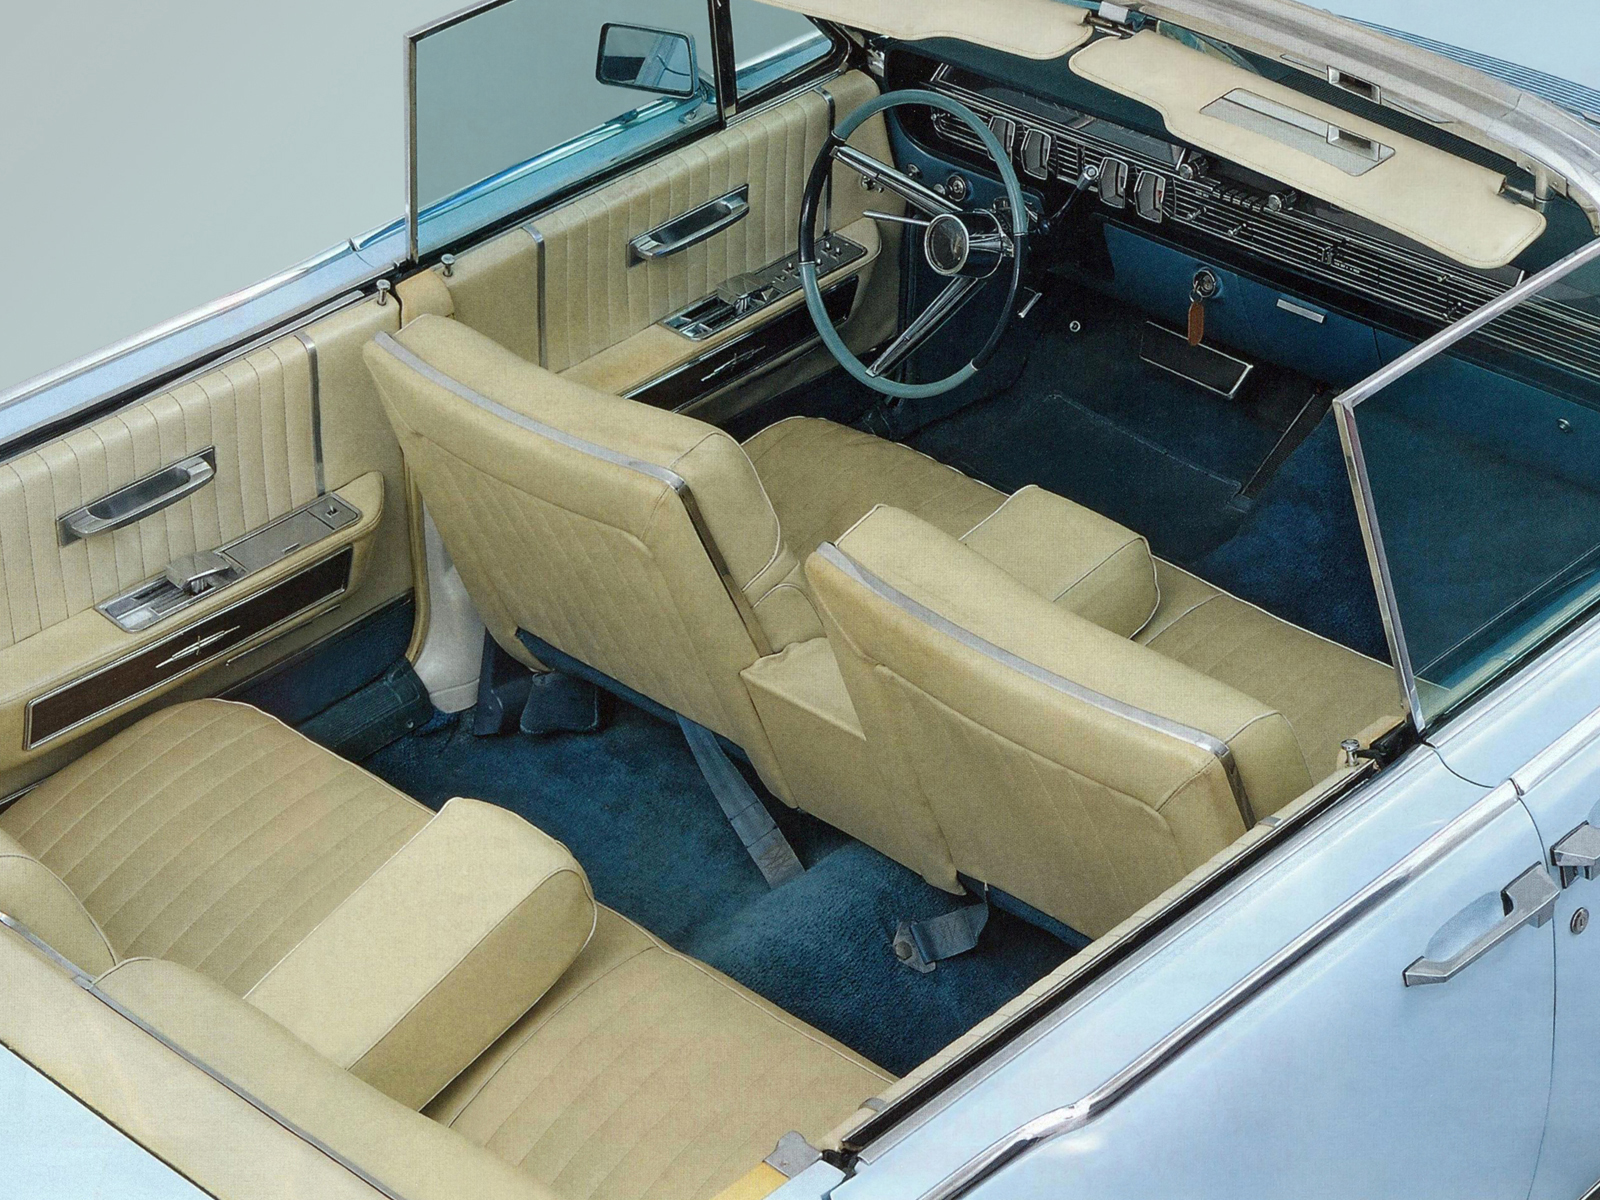 1965 Lincoln Continental Interior Trim - Automotive Mileposts